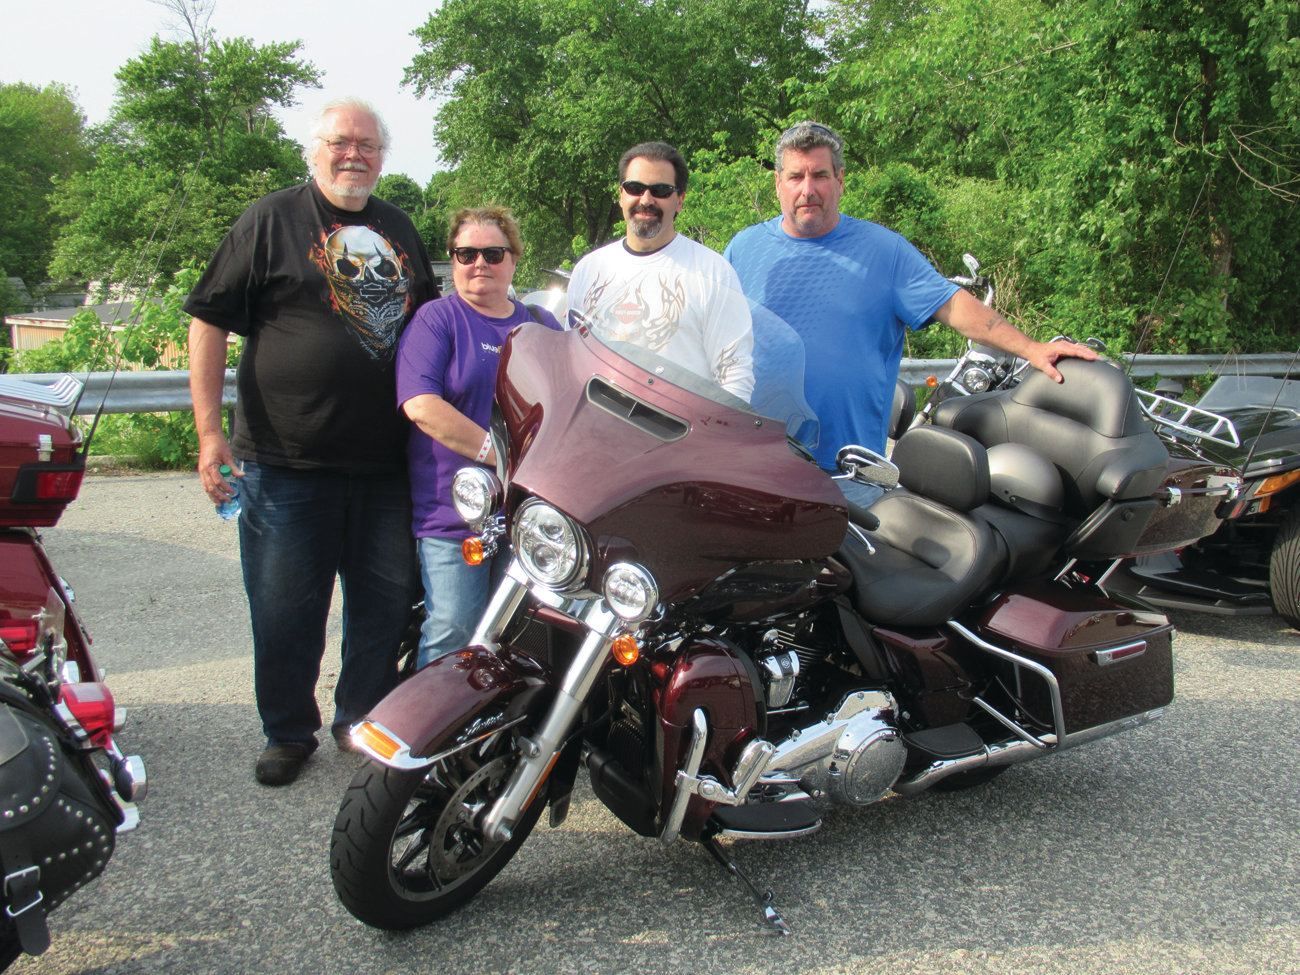 BAILEY BUDDIES: Among the many Warwick residents who helped set a record for Saturday's 20th Annual SORI Motorcycle Run were the Baileys – Brian and Pat – Bruce Holland and Sal Palumbo.